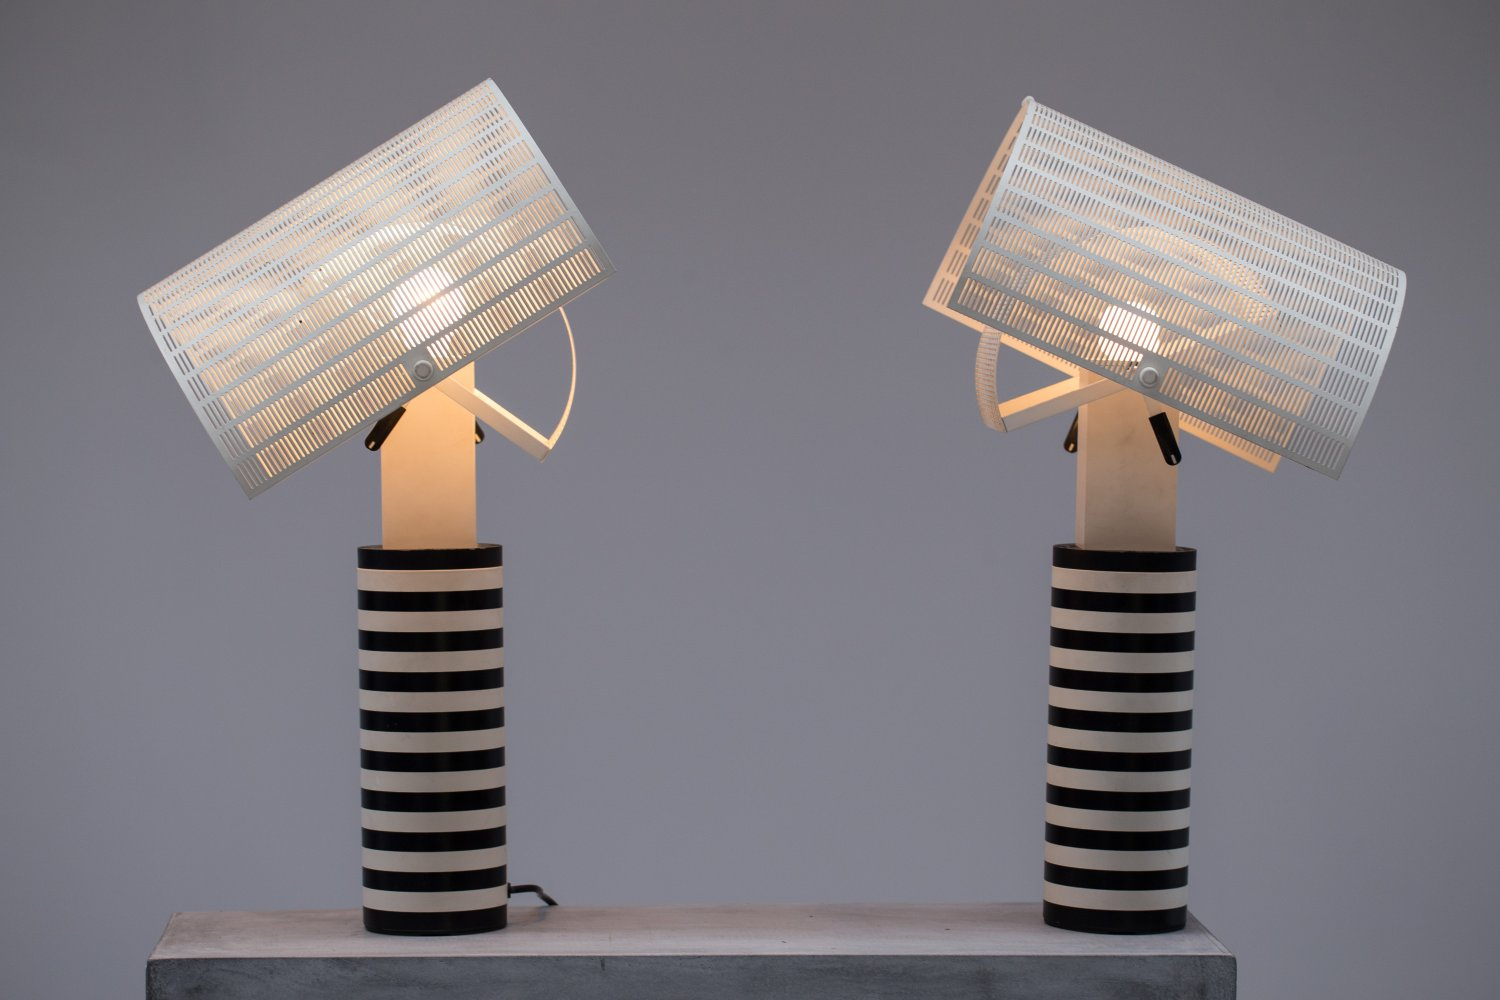 Pair of Shogun Table Lamps by Mario Botta